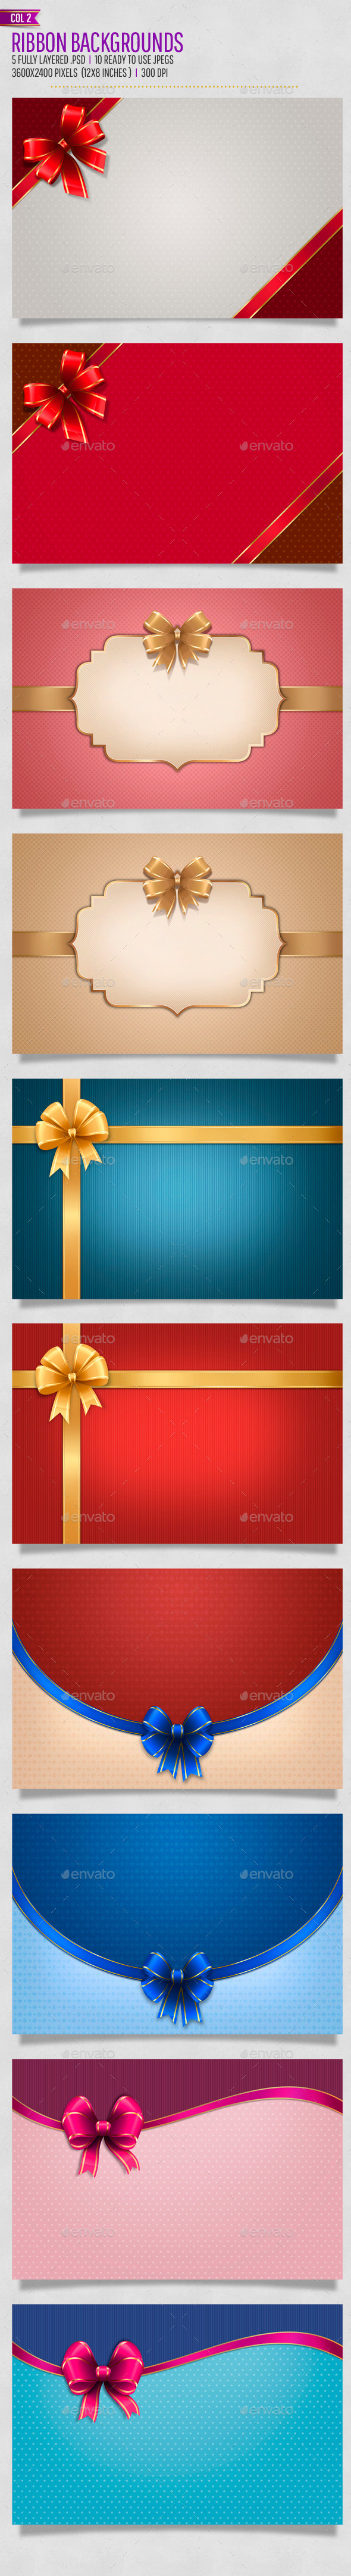 Bow / Ribbon Backgrounds Col2 - Backgrounds Graphics